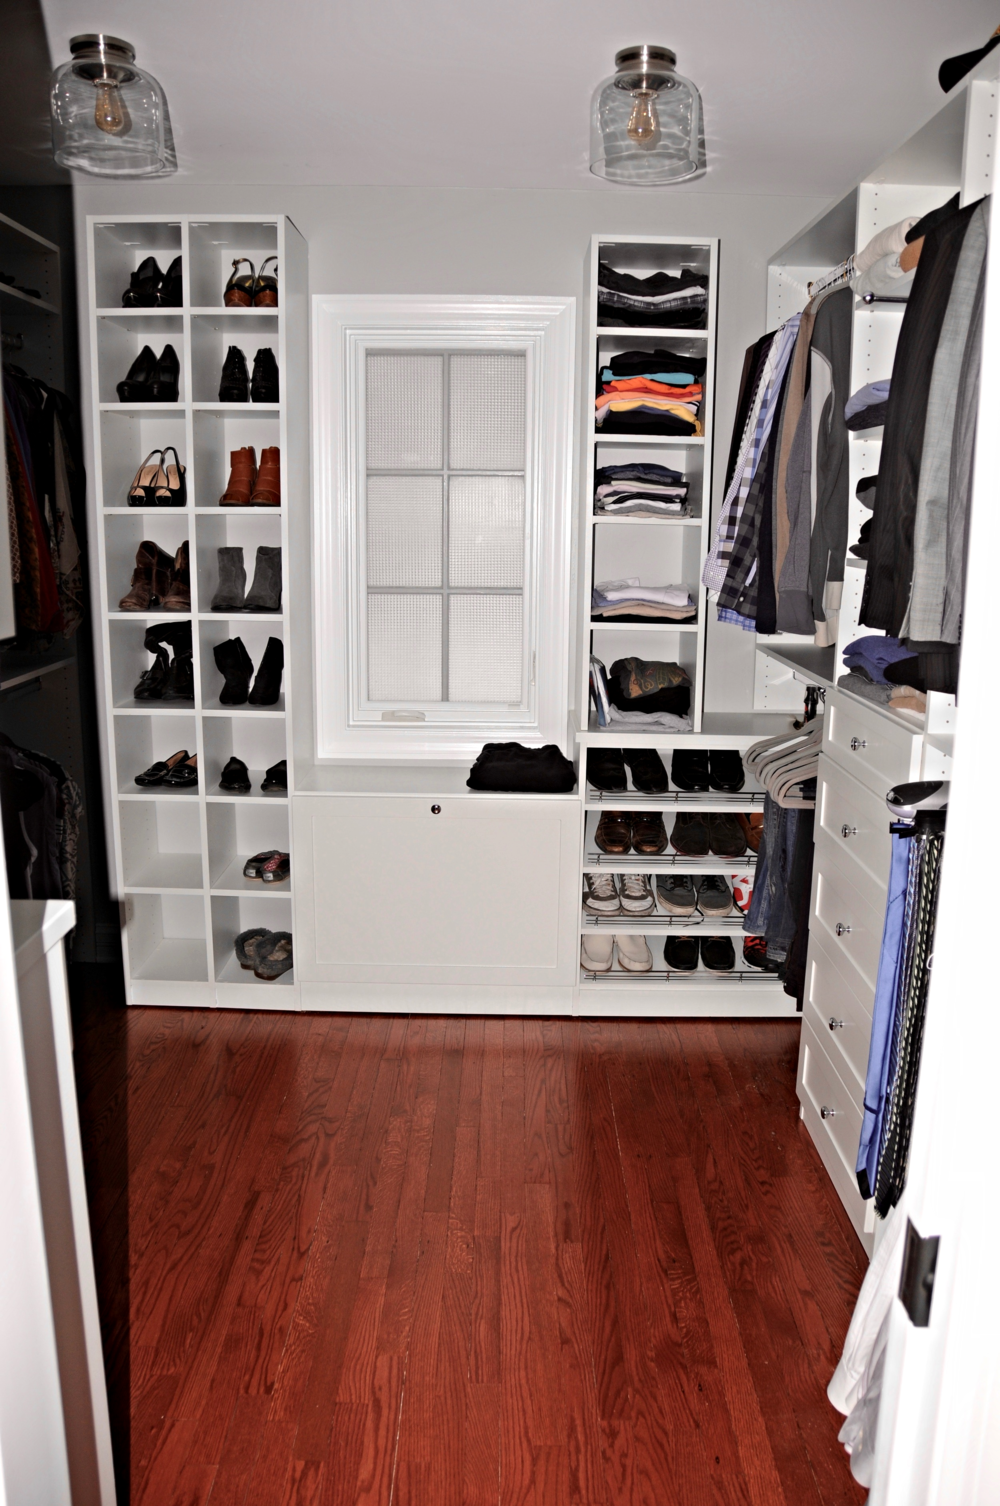 Closet built-ins make good use of the space for organizing and storage. The retractable clothes hamper under the window is a nice feature.